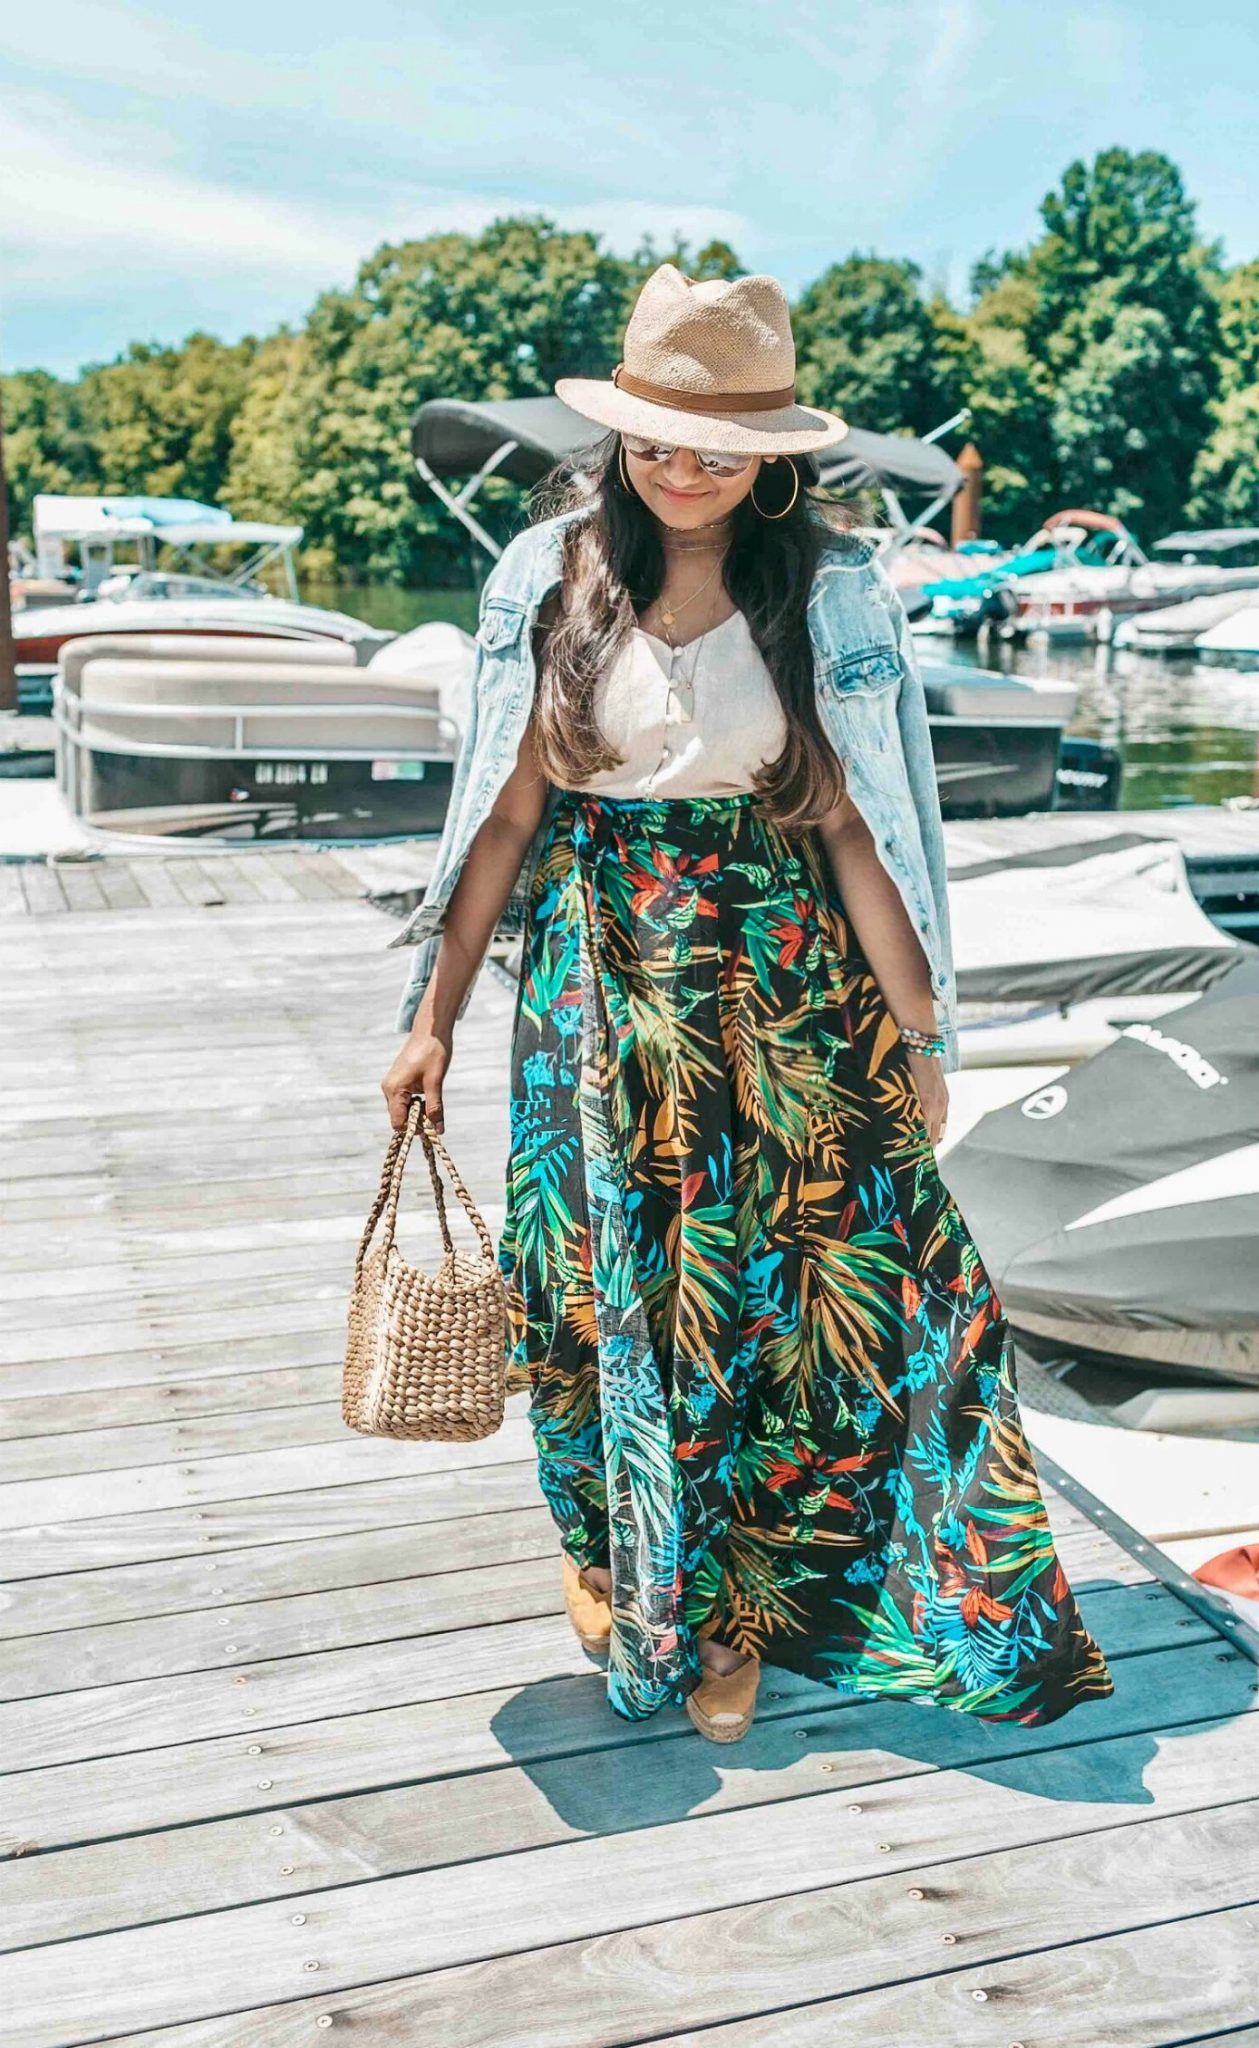 wearing Shein Tropical Print Self Tie Wrap Skirt | fall accessories featured by popular US modest fashion blogger, Dreaming Loud